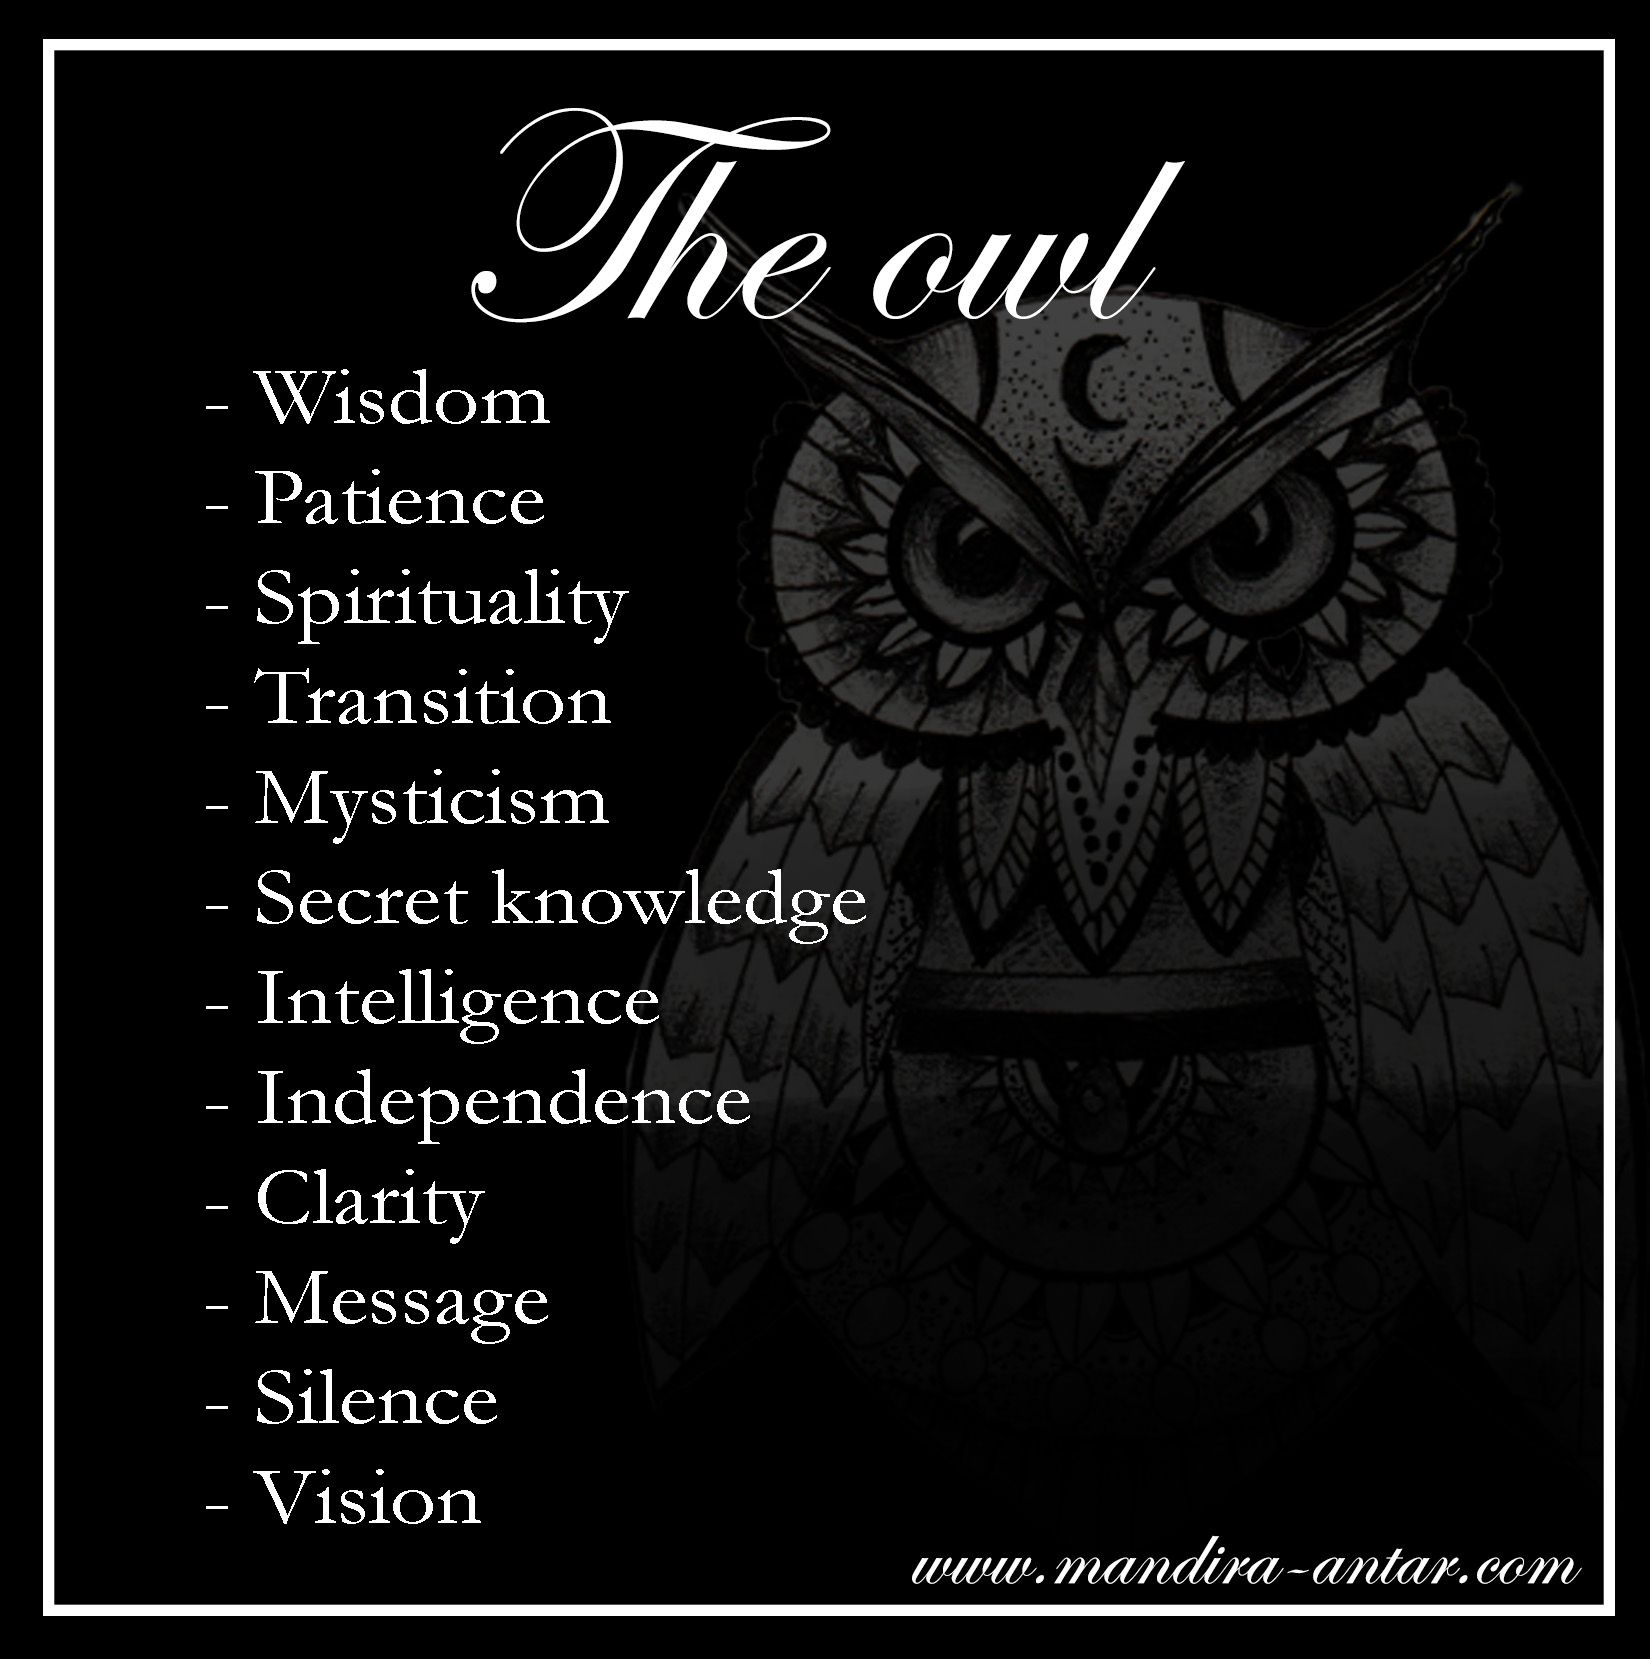 Owl symbolism and meaning read all about it in our blog owl symbolism and meaning read all about it in our blog biocorpaavc